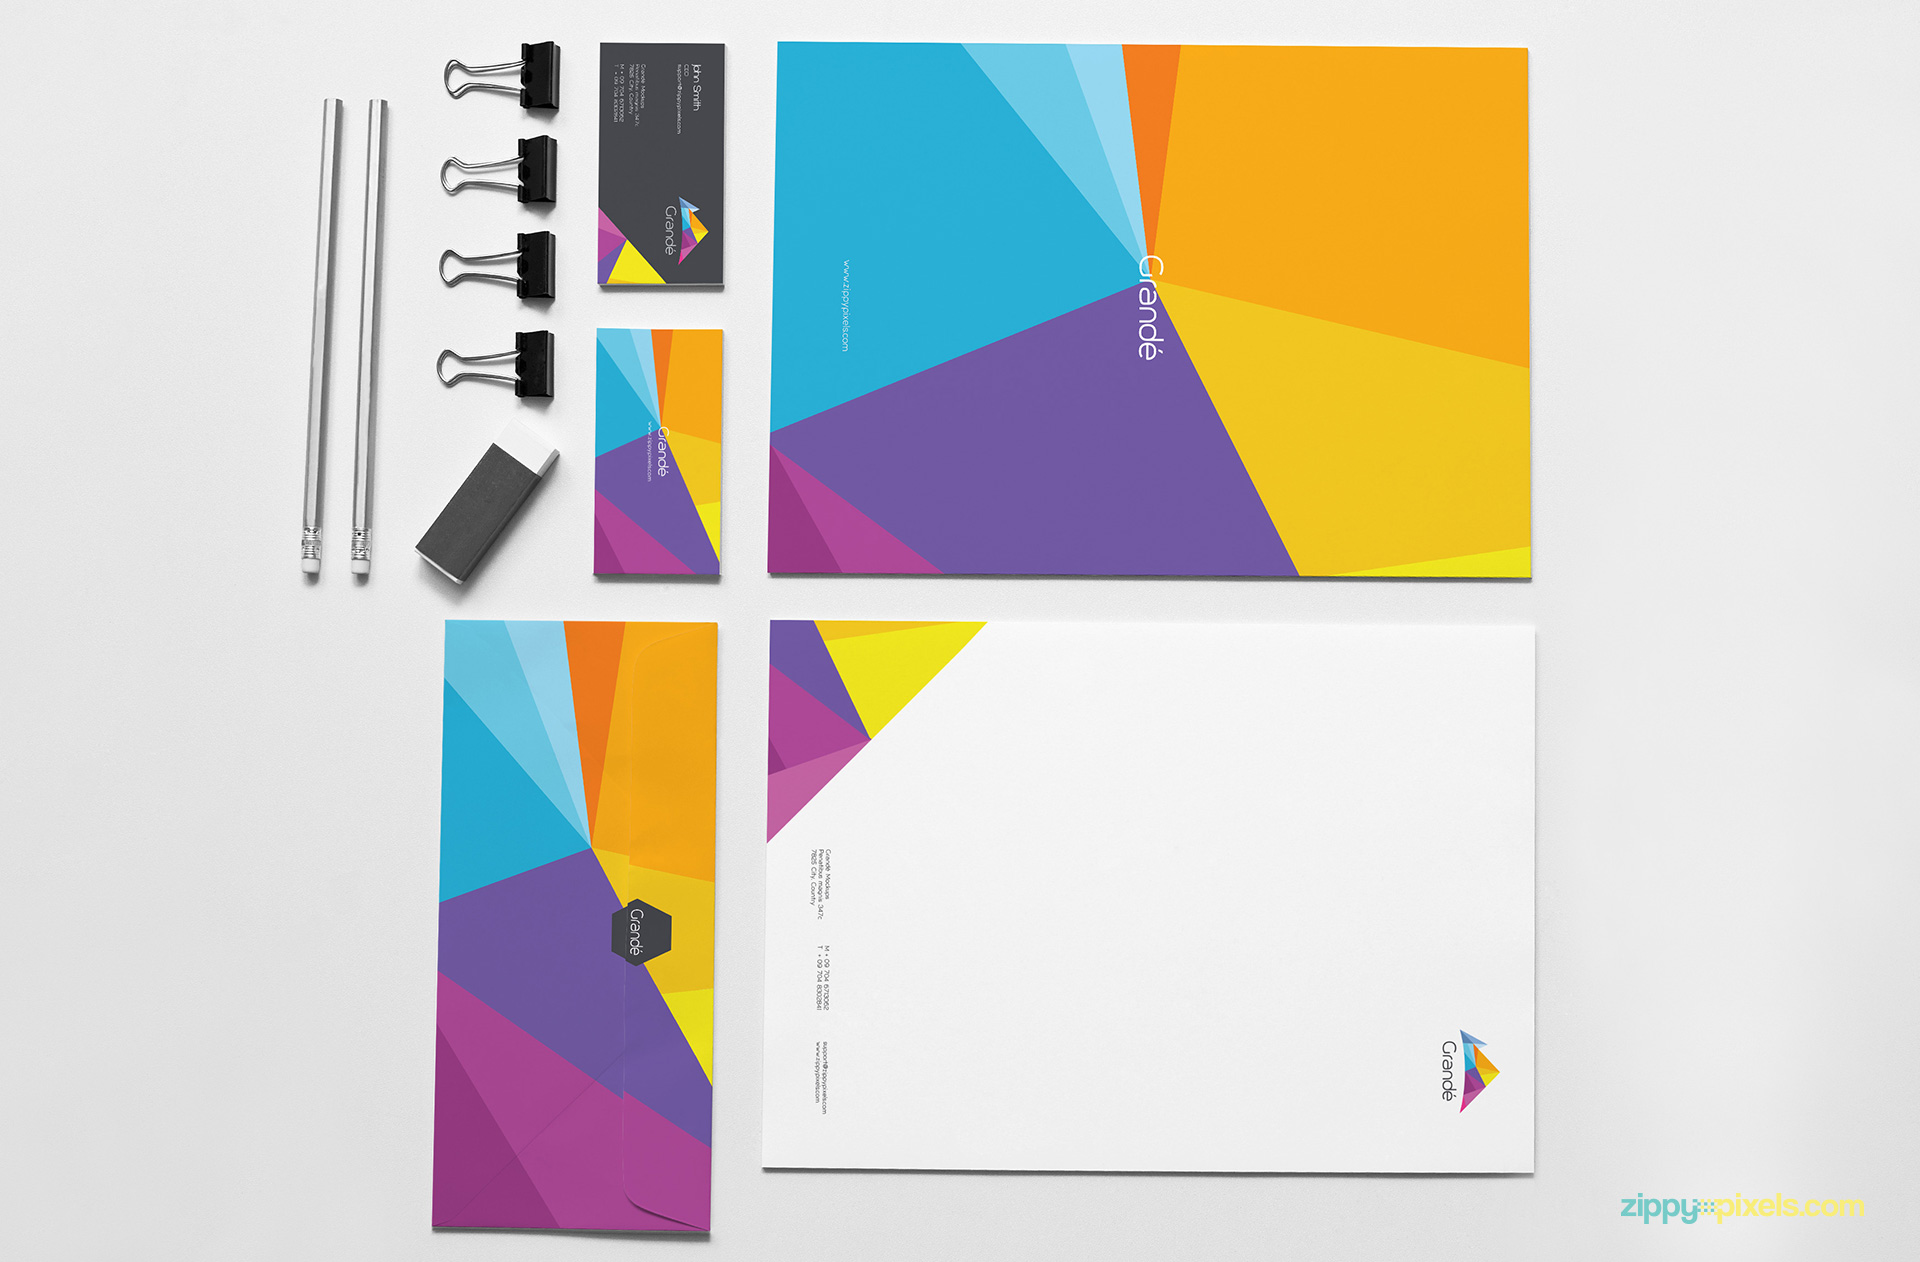 Stationery Item Set of Letterhead, Business Cards & Envelope for Brand Identity Mockup